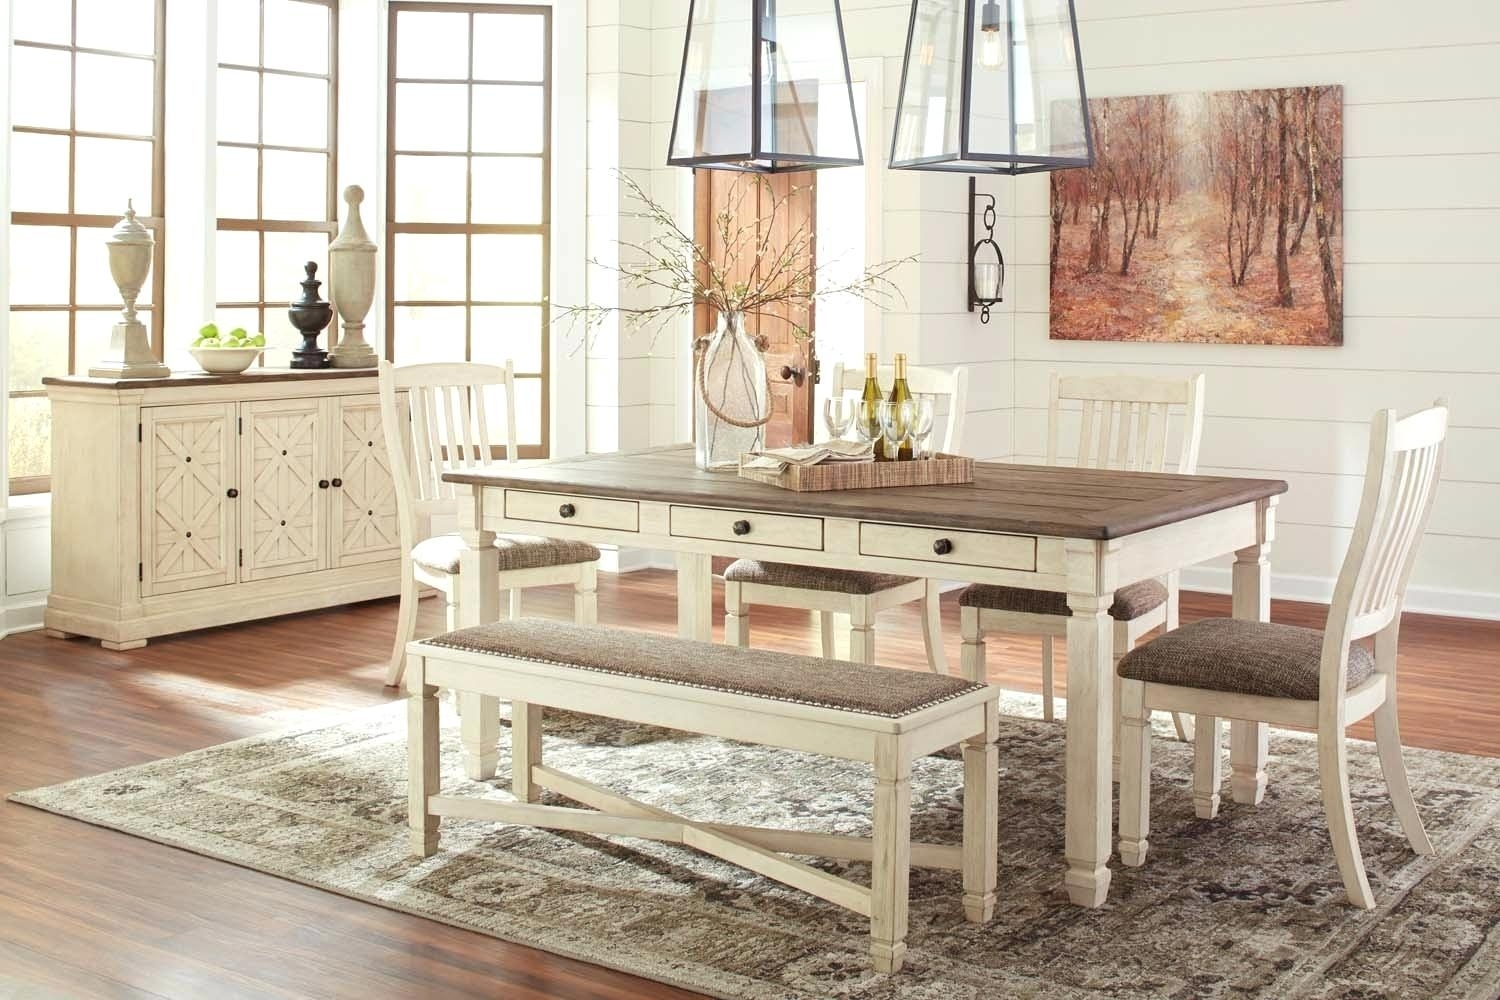 6 Piece Dining Room Set Sets Bravo Counter Height Corner Seating 2 Regarding Most Current Mallard 7 Piece Extension Dining Sets (Image 1 of 20)